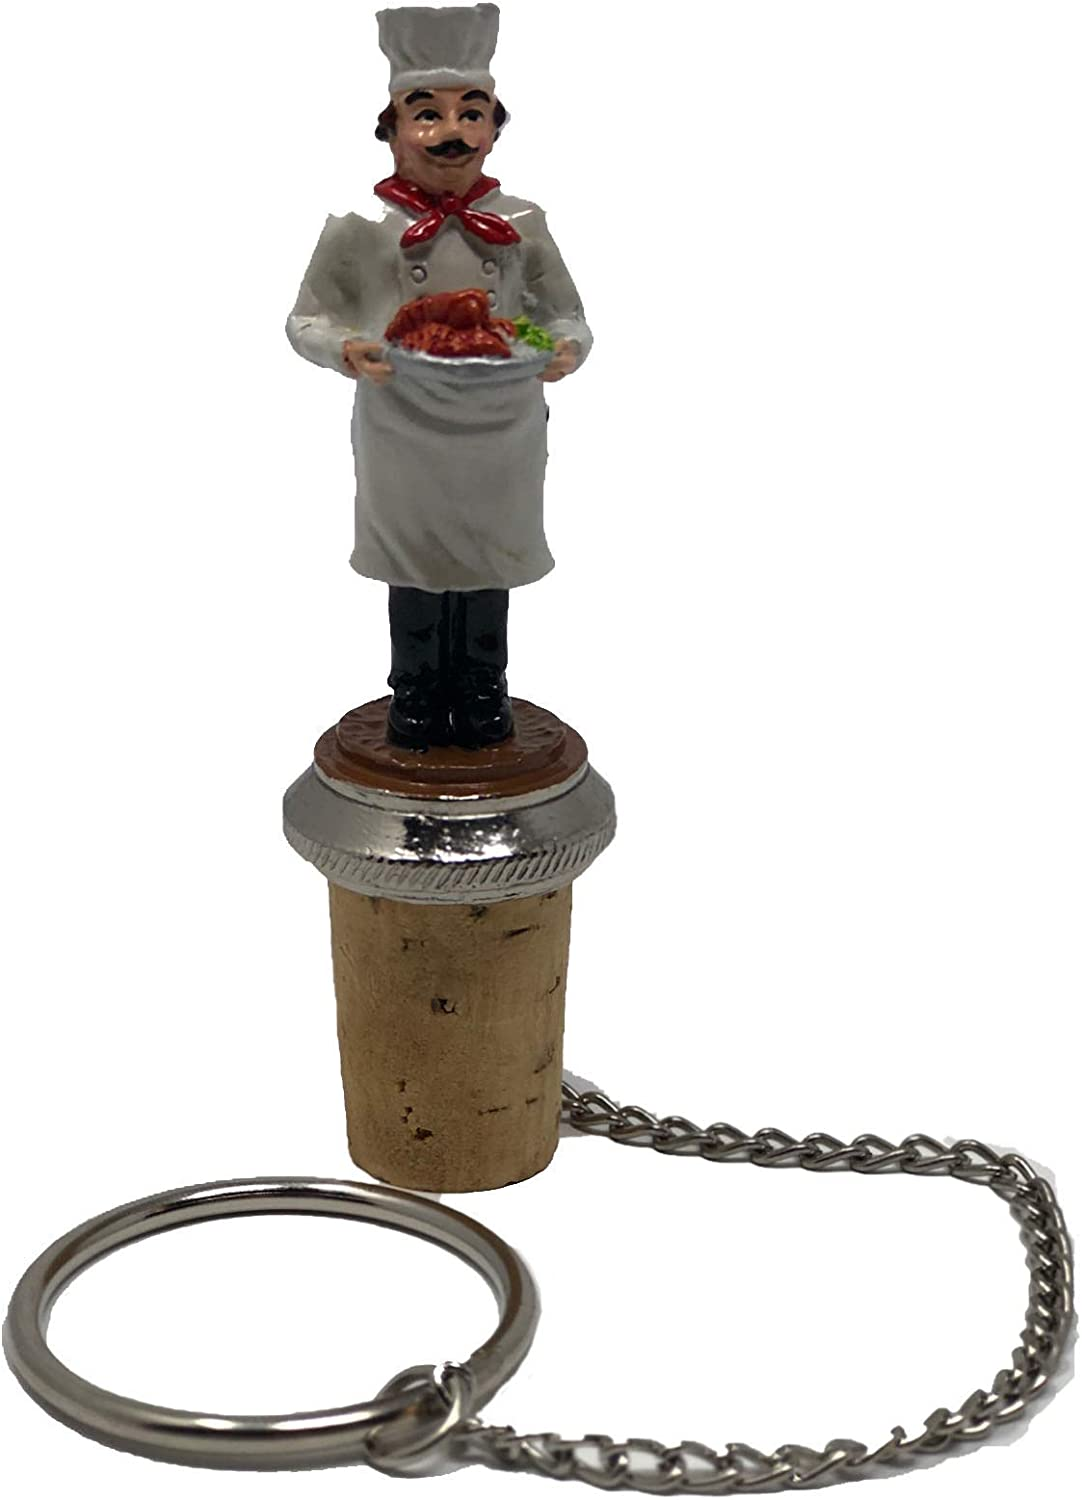 Chef Wine and Beverage Bottle Stopper